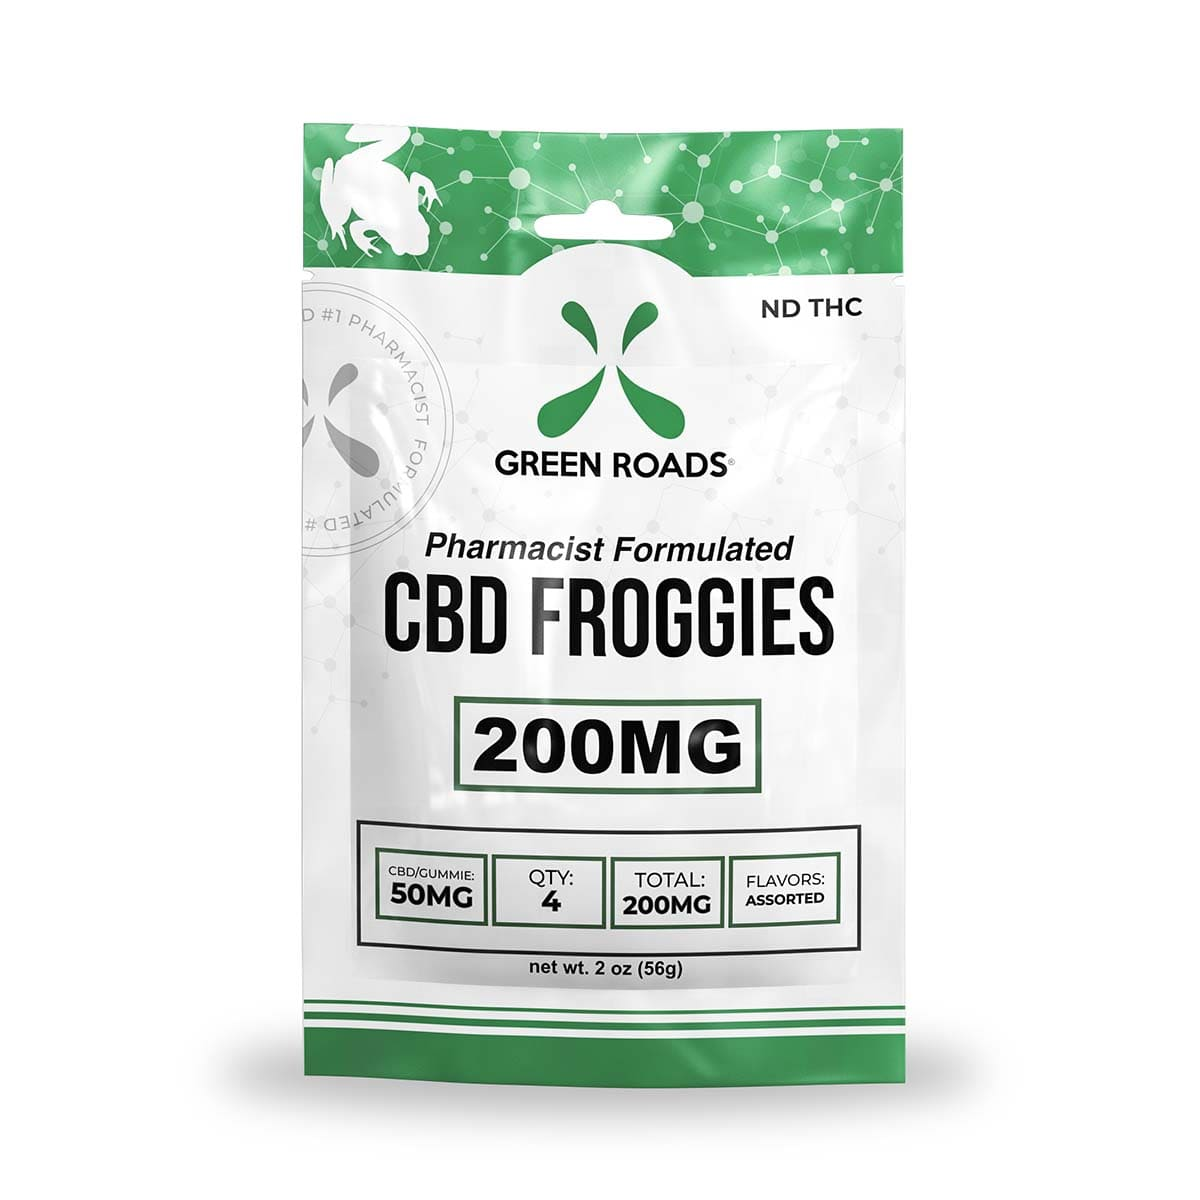 Green Roads CBD Froggies - 200mg (50mg CBD per froggy) - 2oz